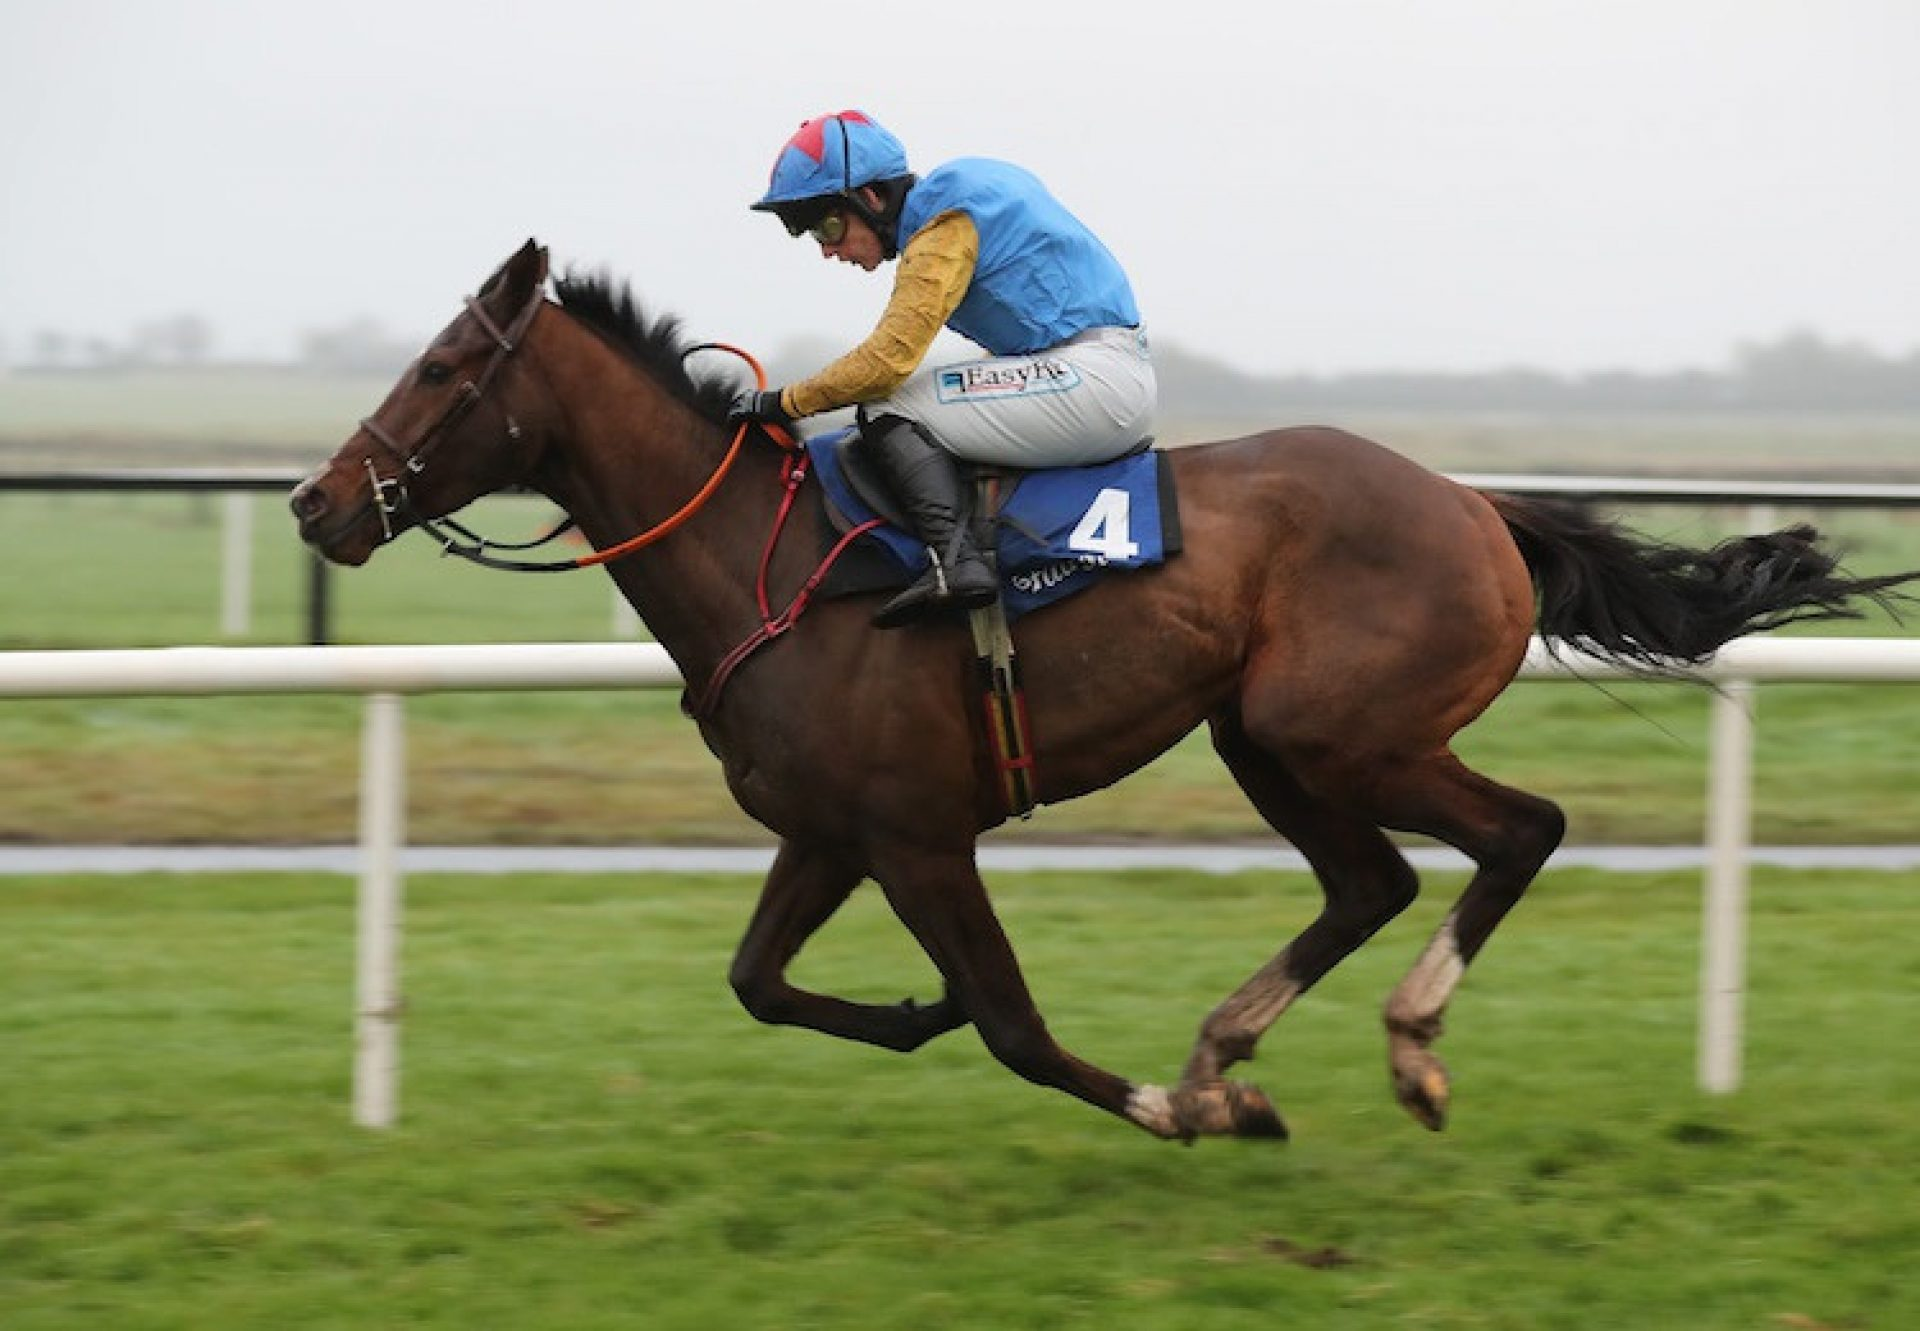 Downtown Getaway (Getaway) winning a bumper at Fairyhouse